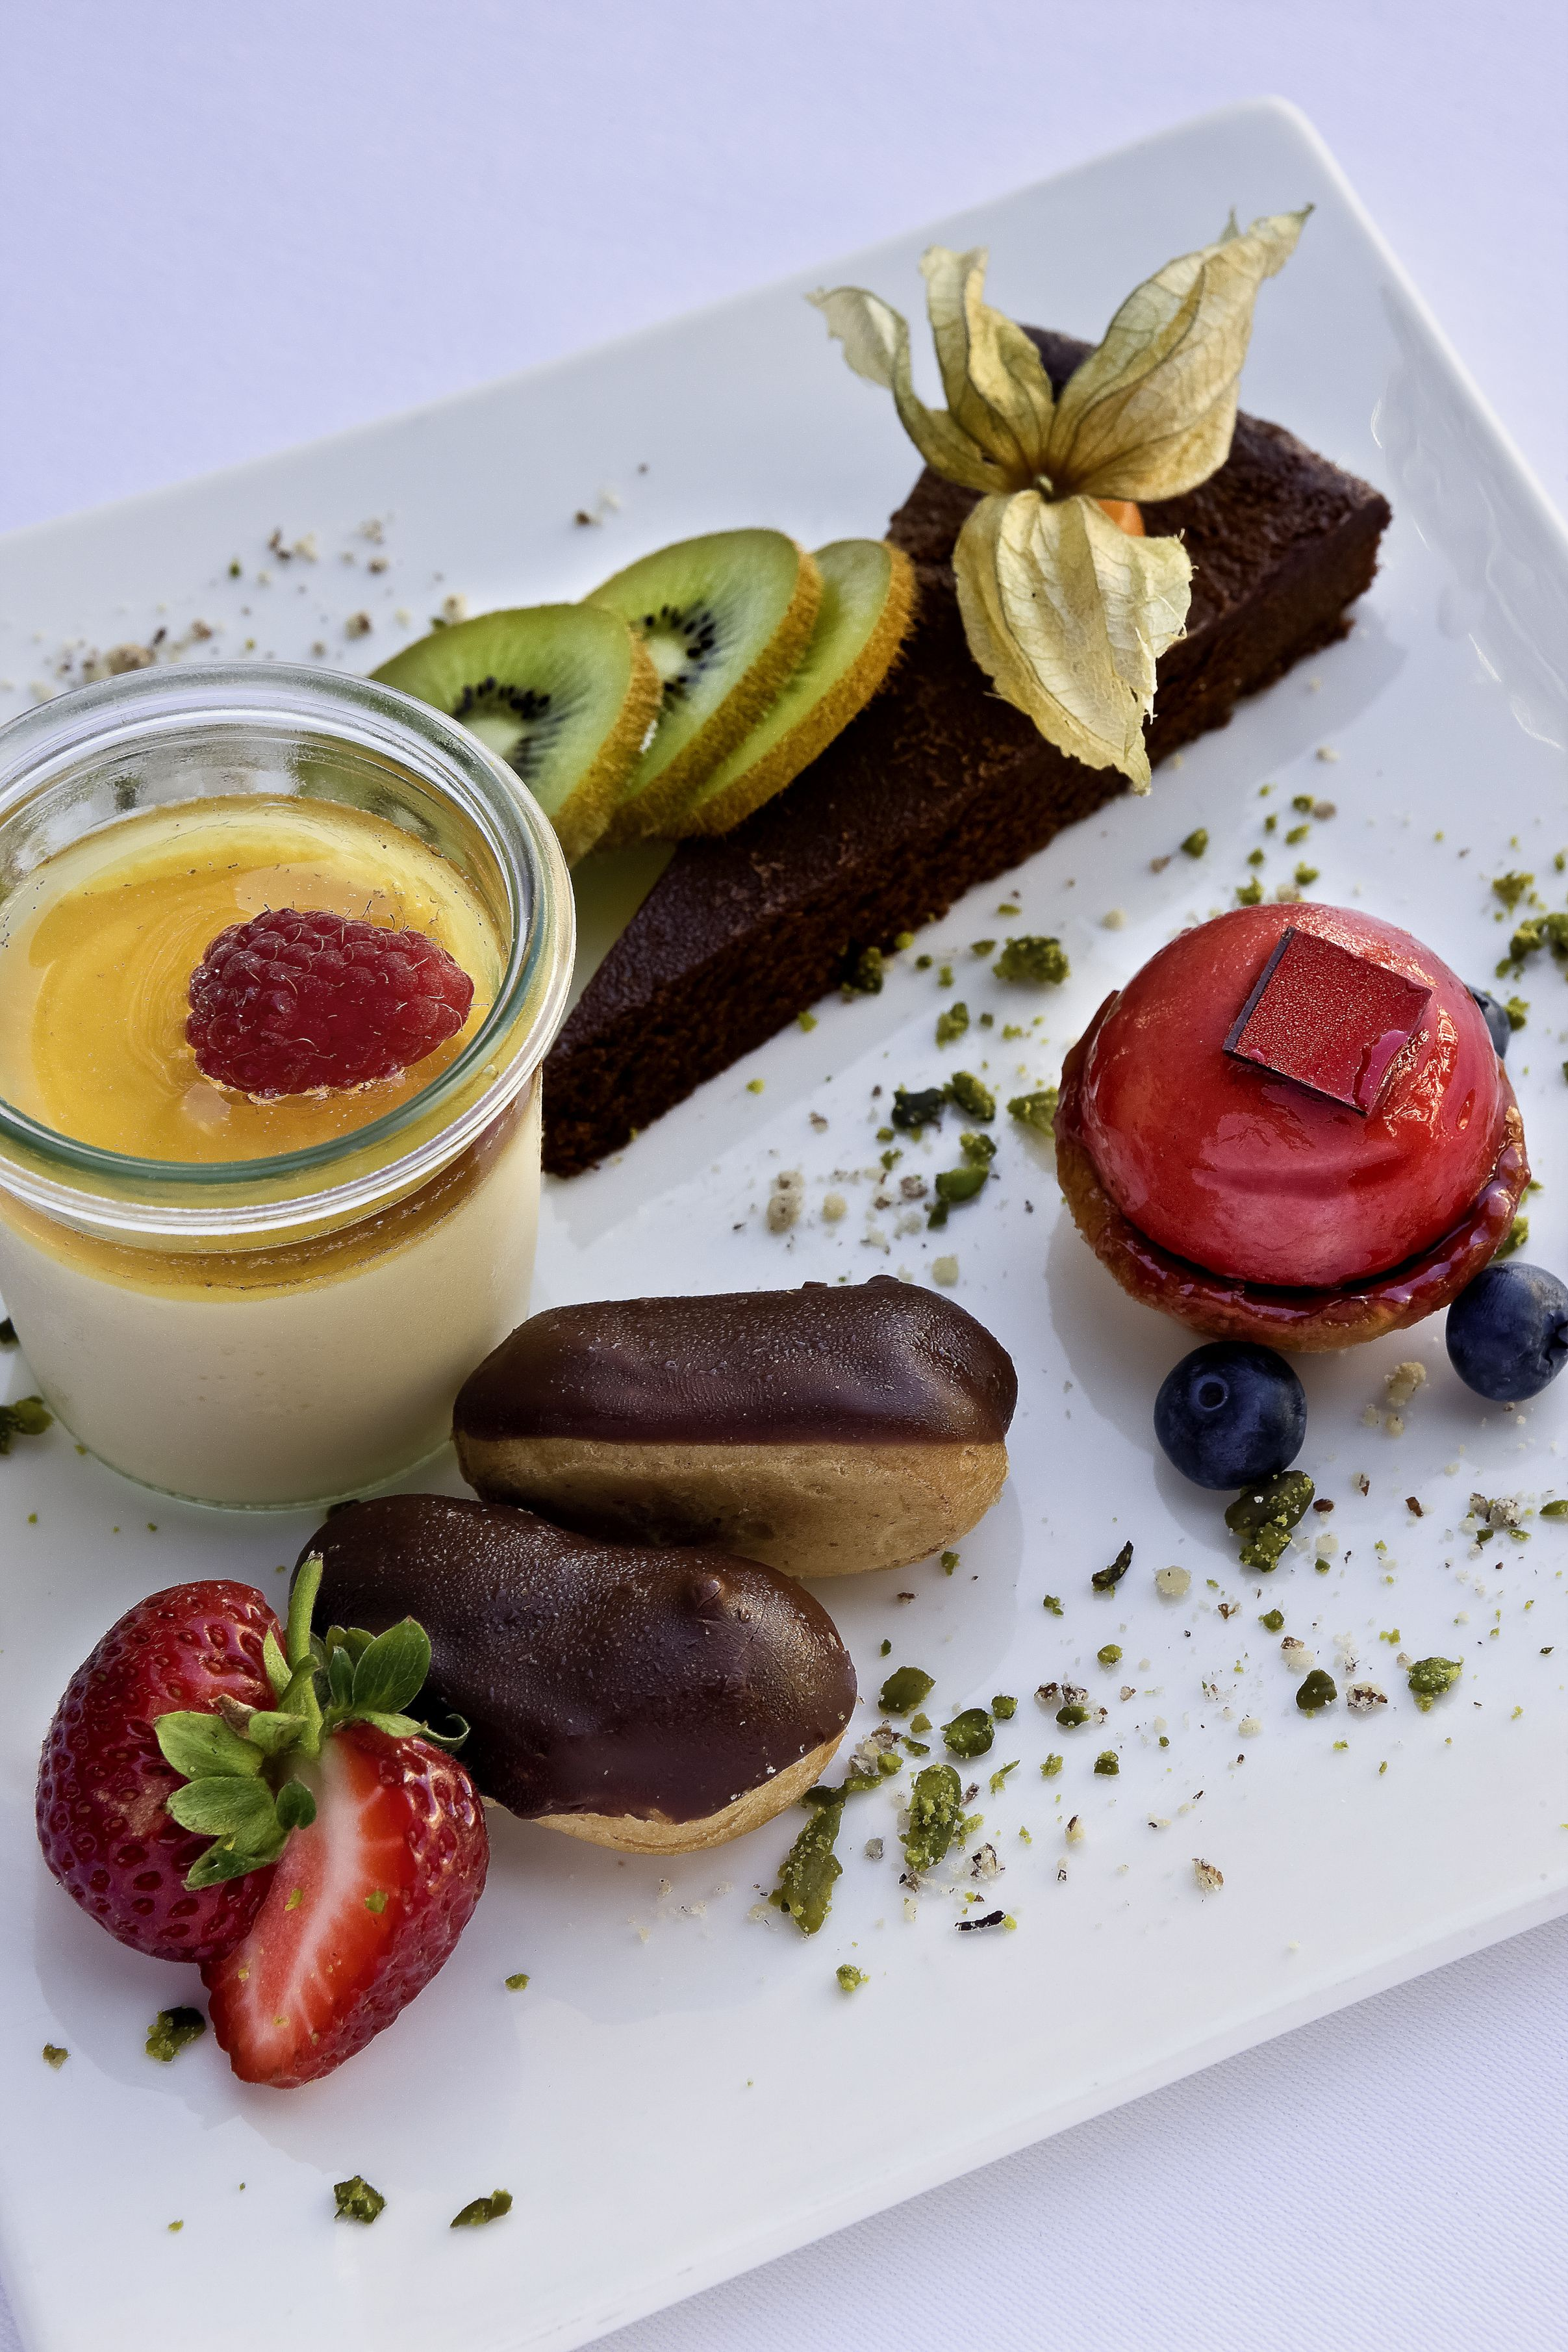 Chocolate cake & chocolate éclair with pana cotta and